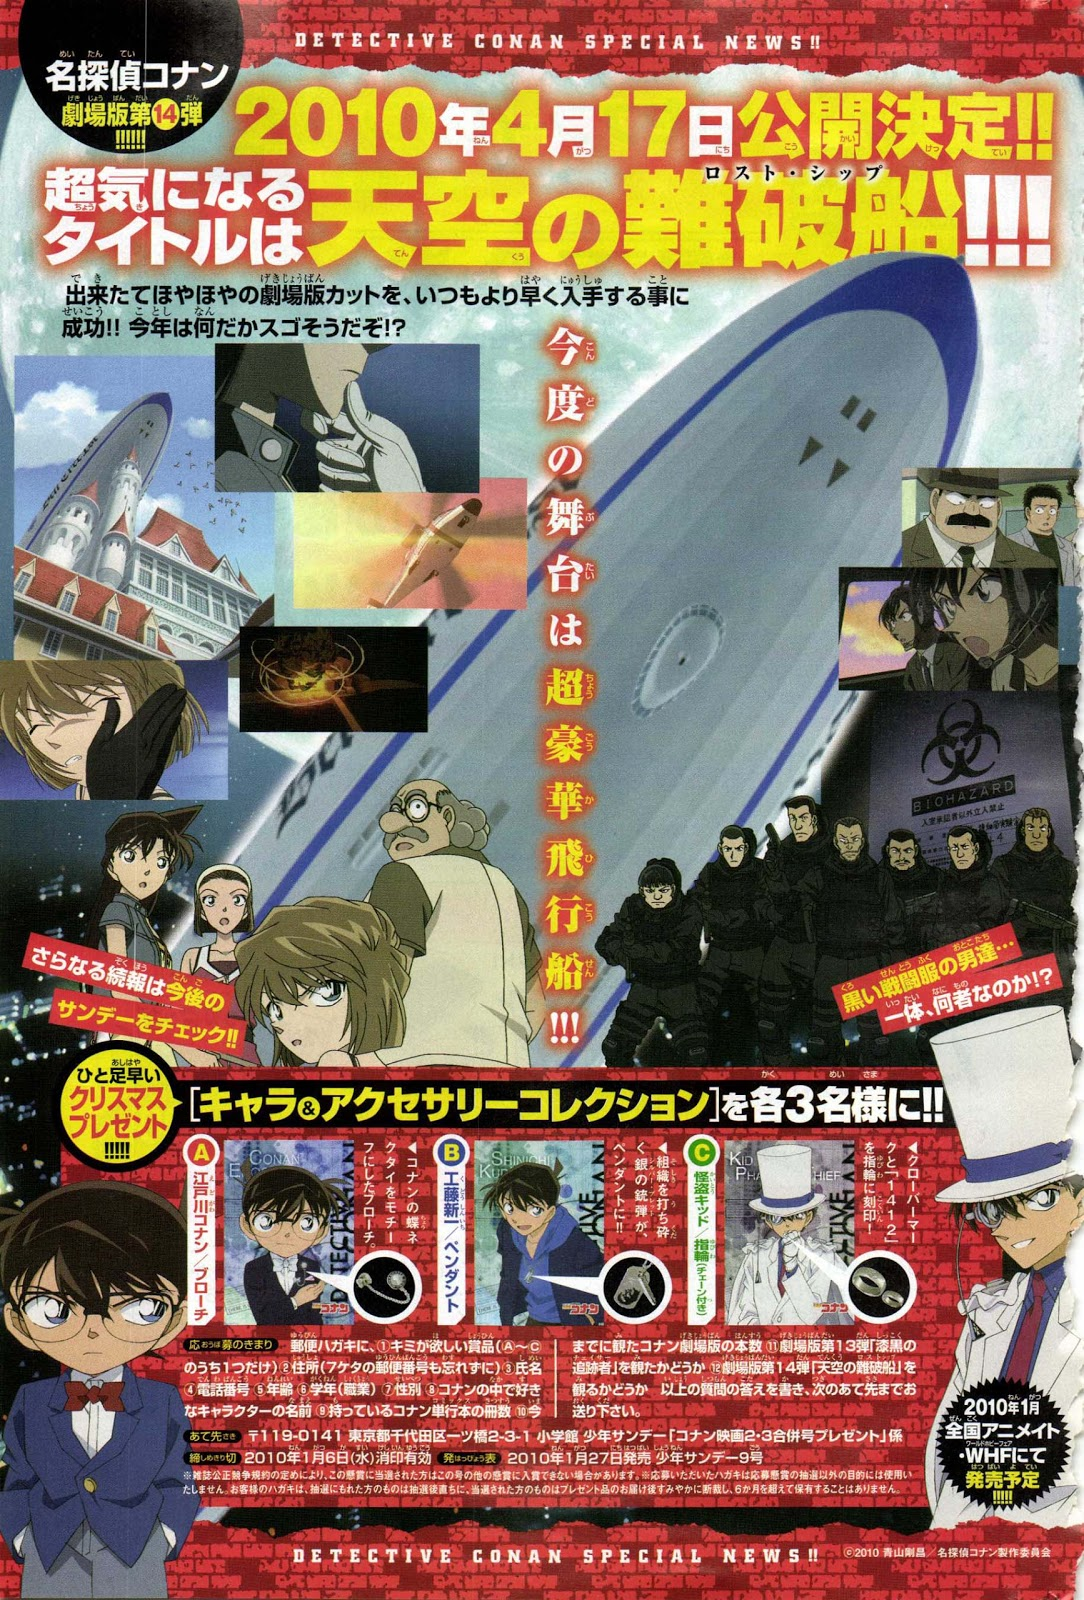 DETECTIVE CONAN ALL MOVIES - ANIME & DROID